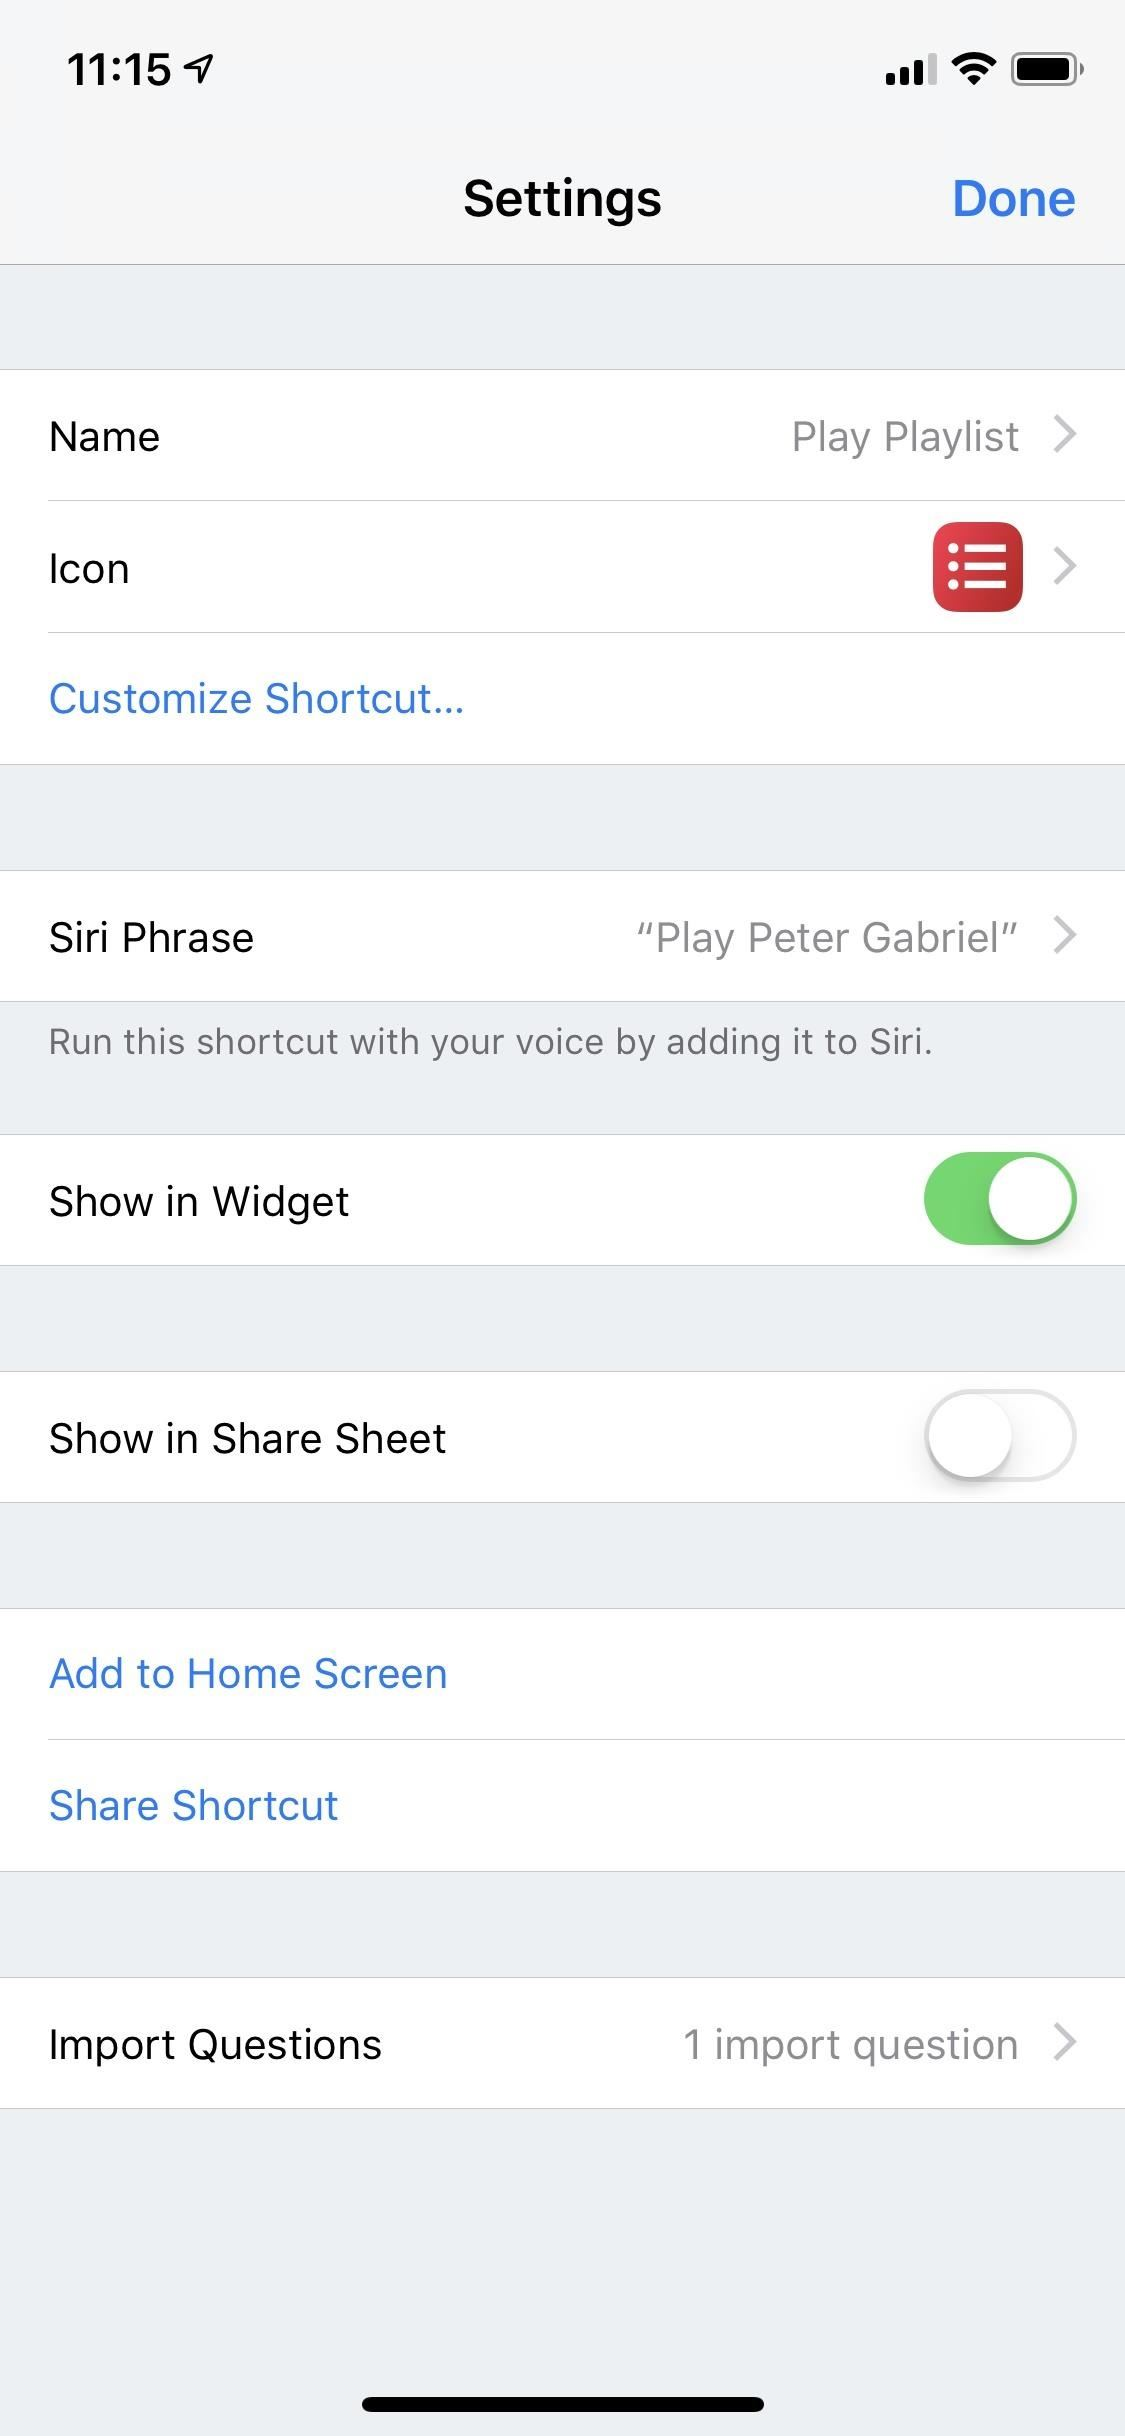 How to Use the Shortcuts App on Your iPhone in iOS 12 for Custom Siri Actions & More